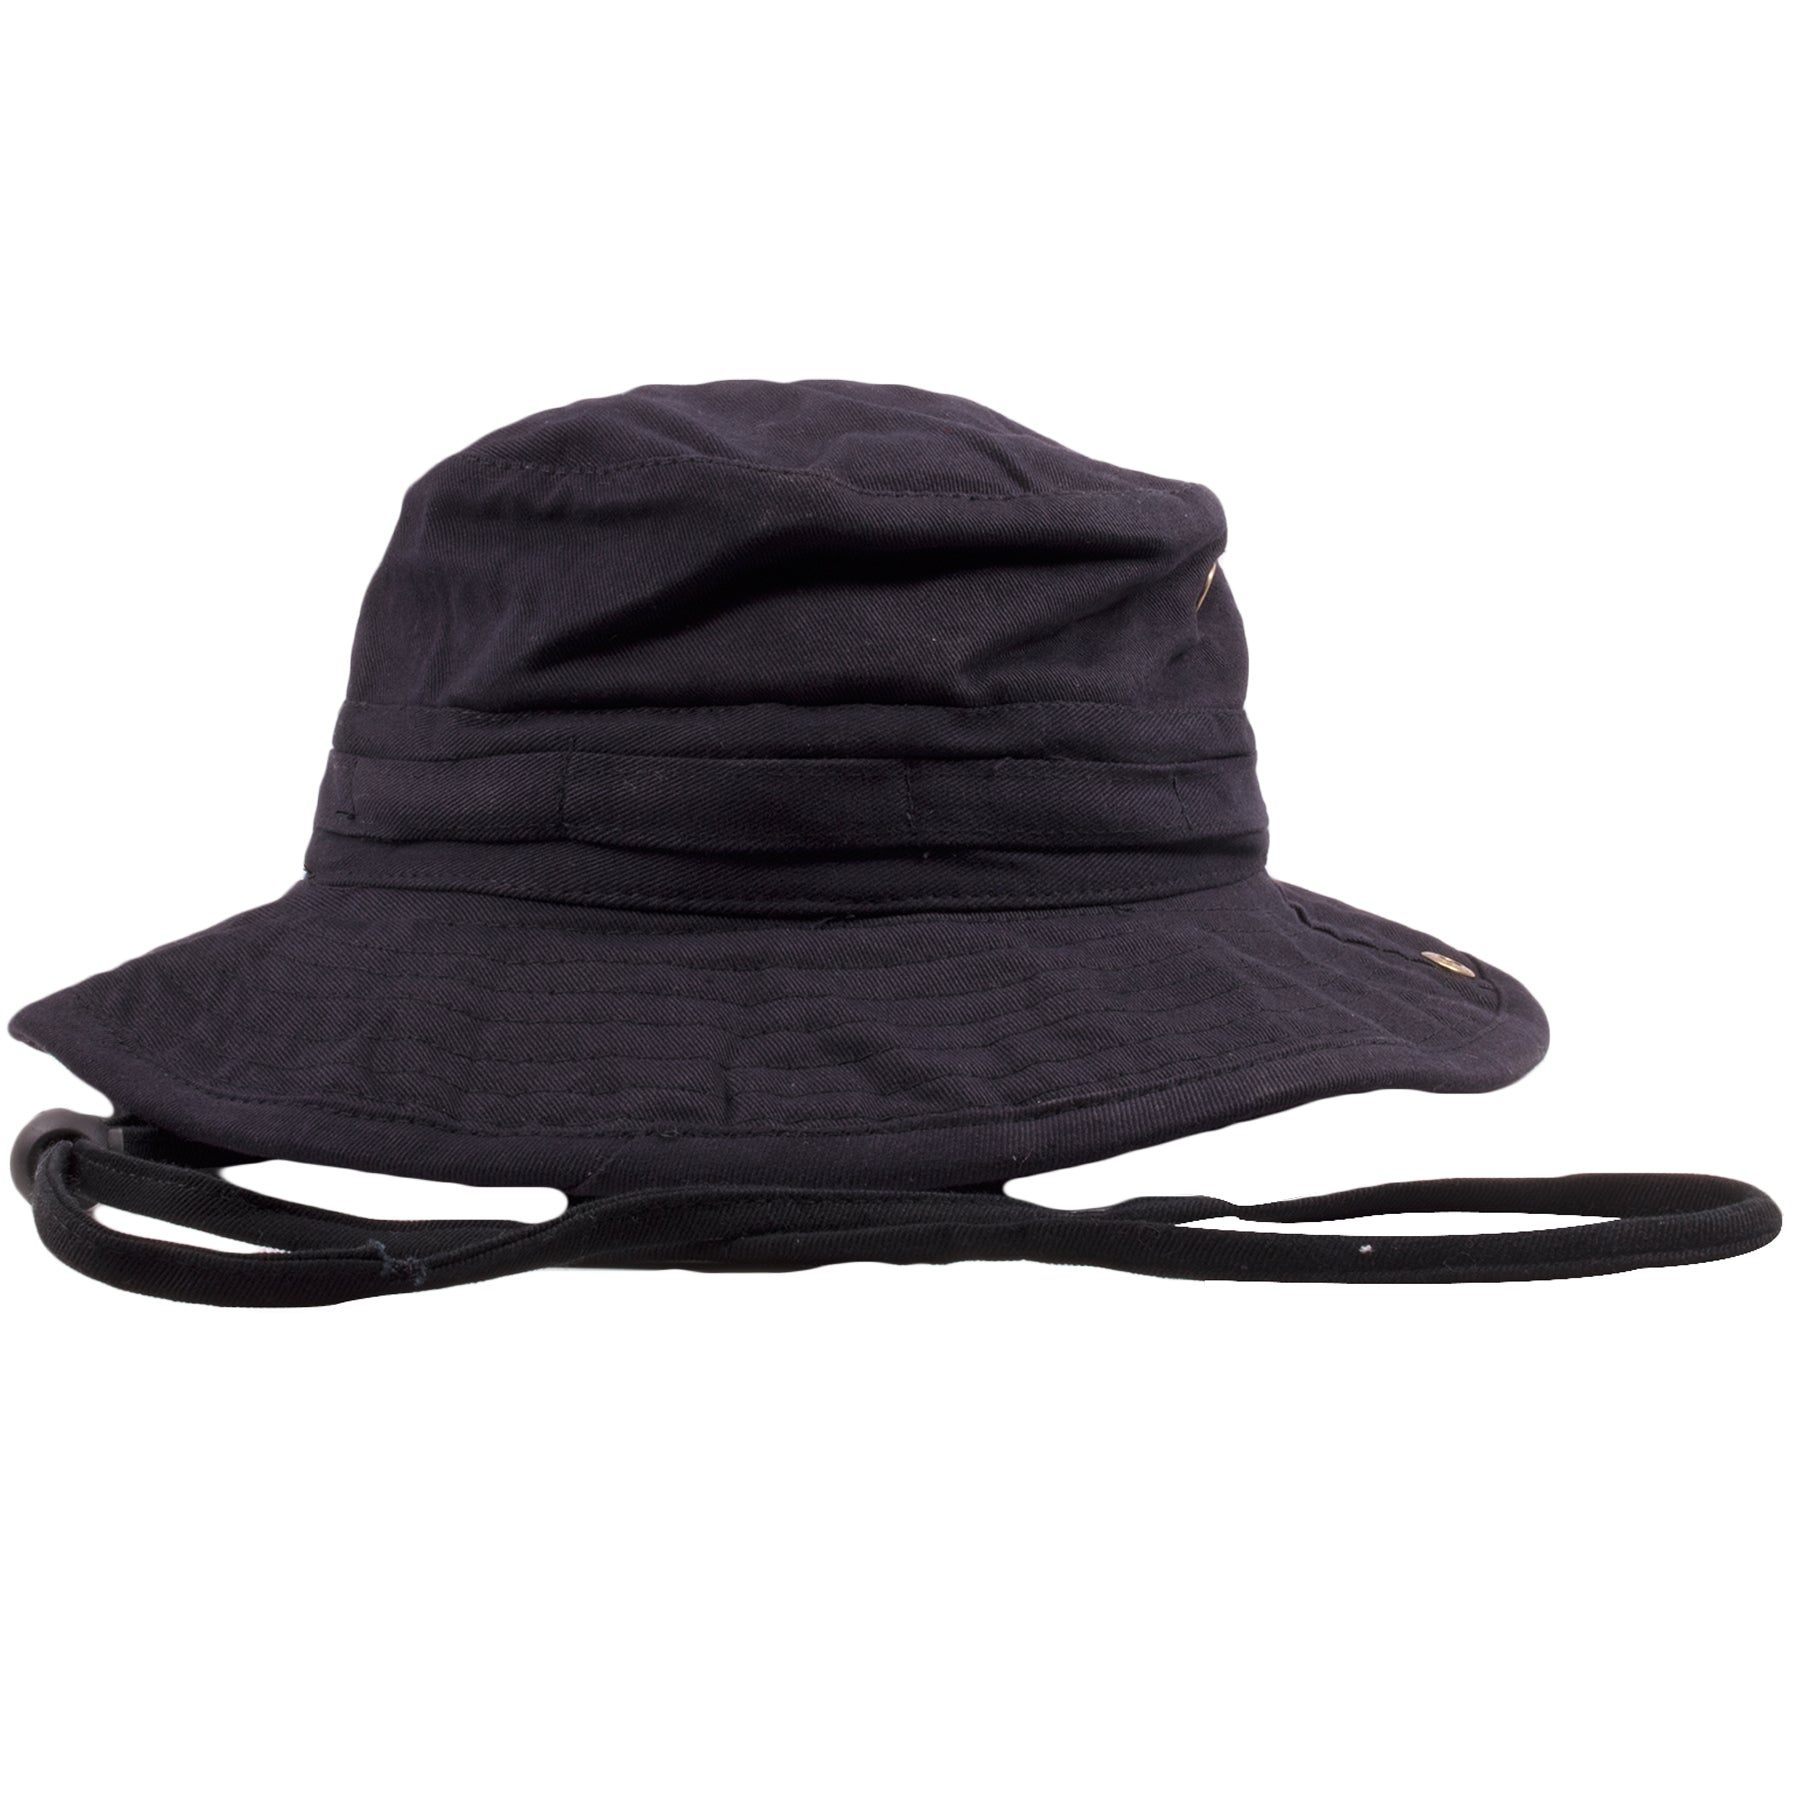 the black foot clan boonie bucket hat is solid black and features a black  drawstring 13a88e69bc7